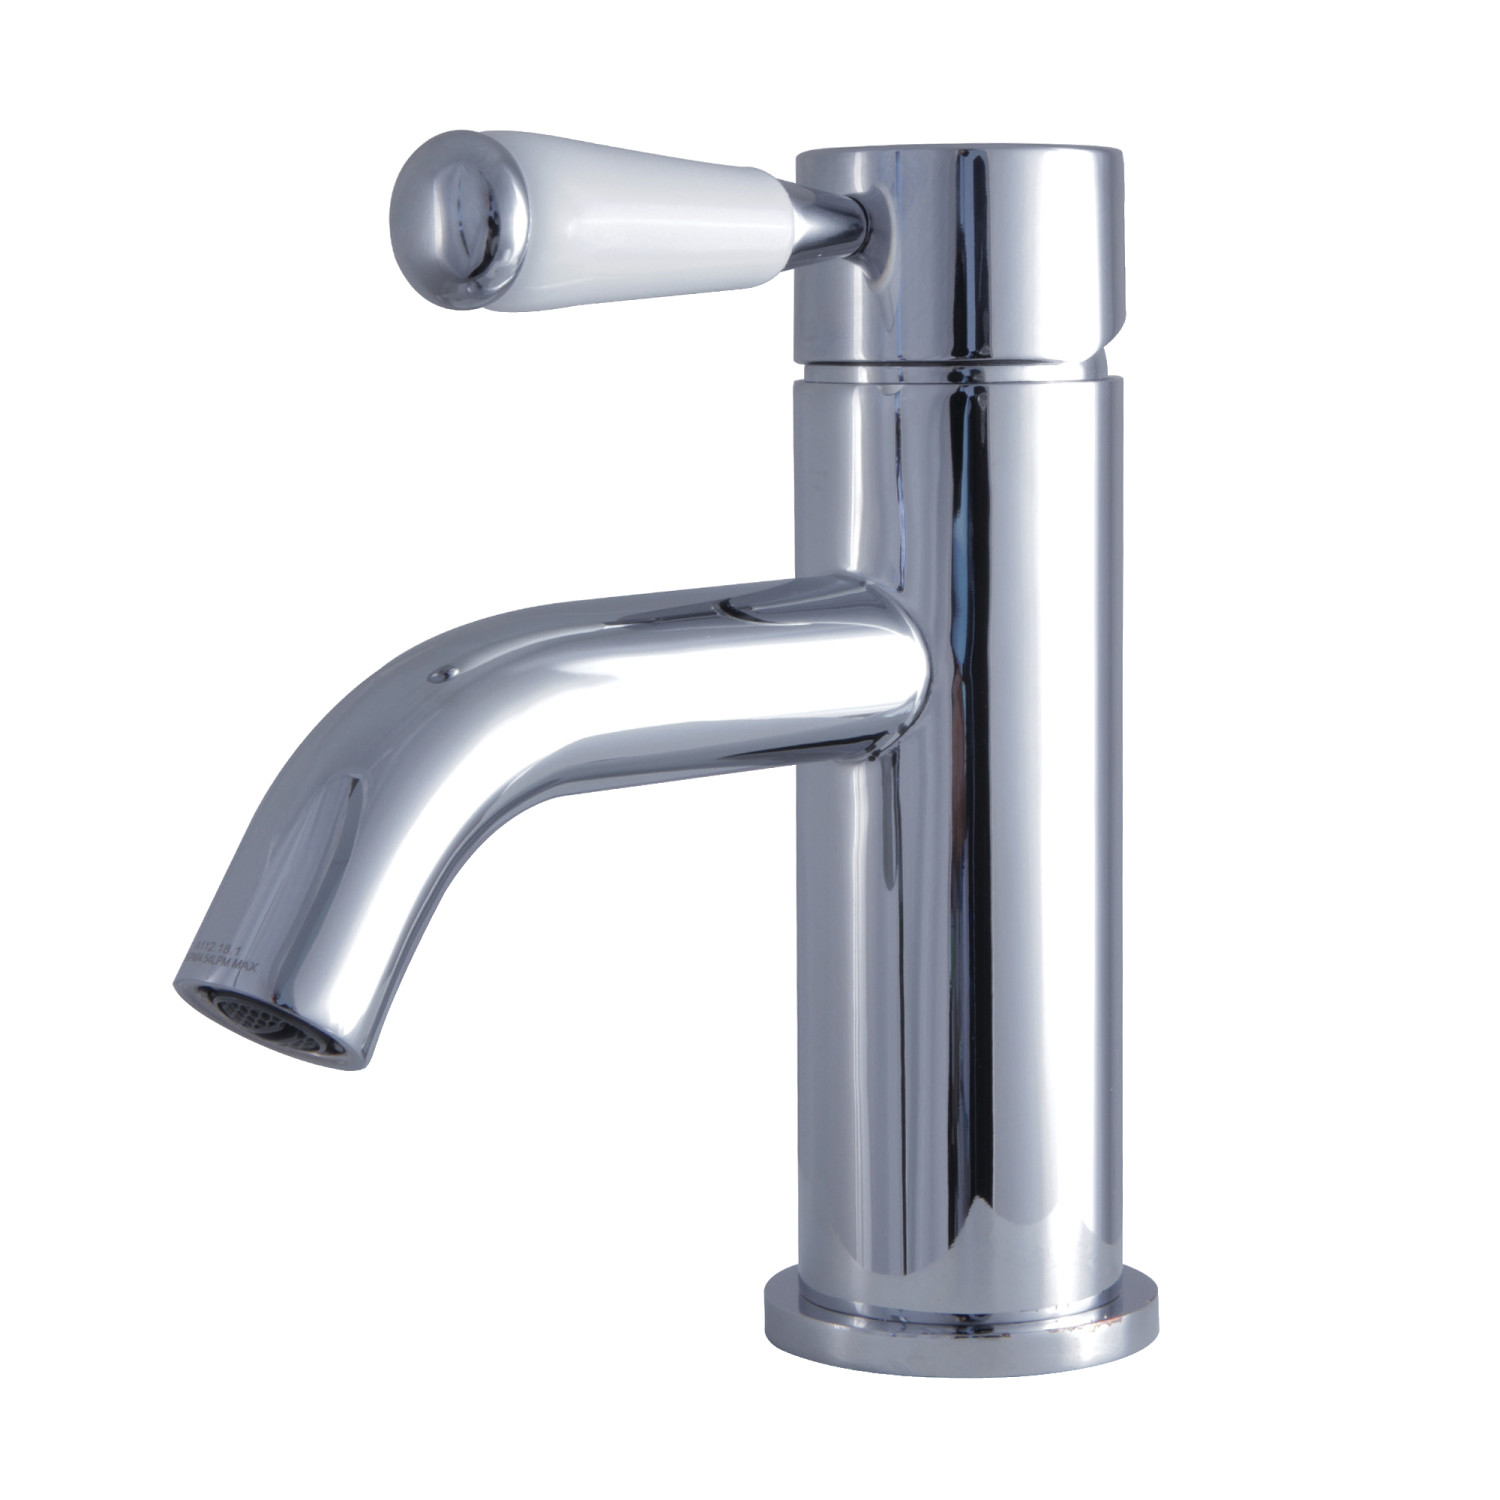 Single-Handle 1-Hole Deck Mounted Bathroom Faucet in Polished Chrome with 5 Color Option